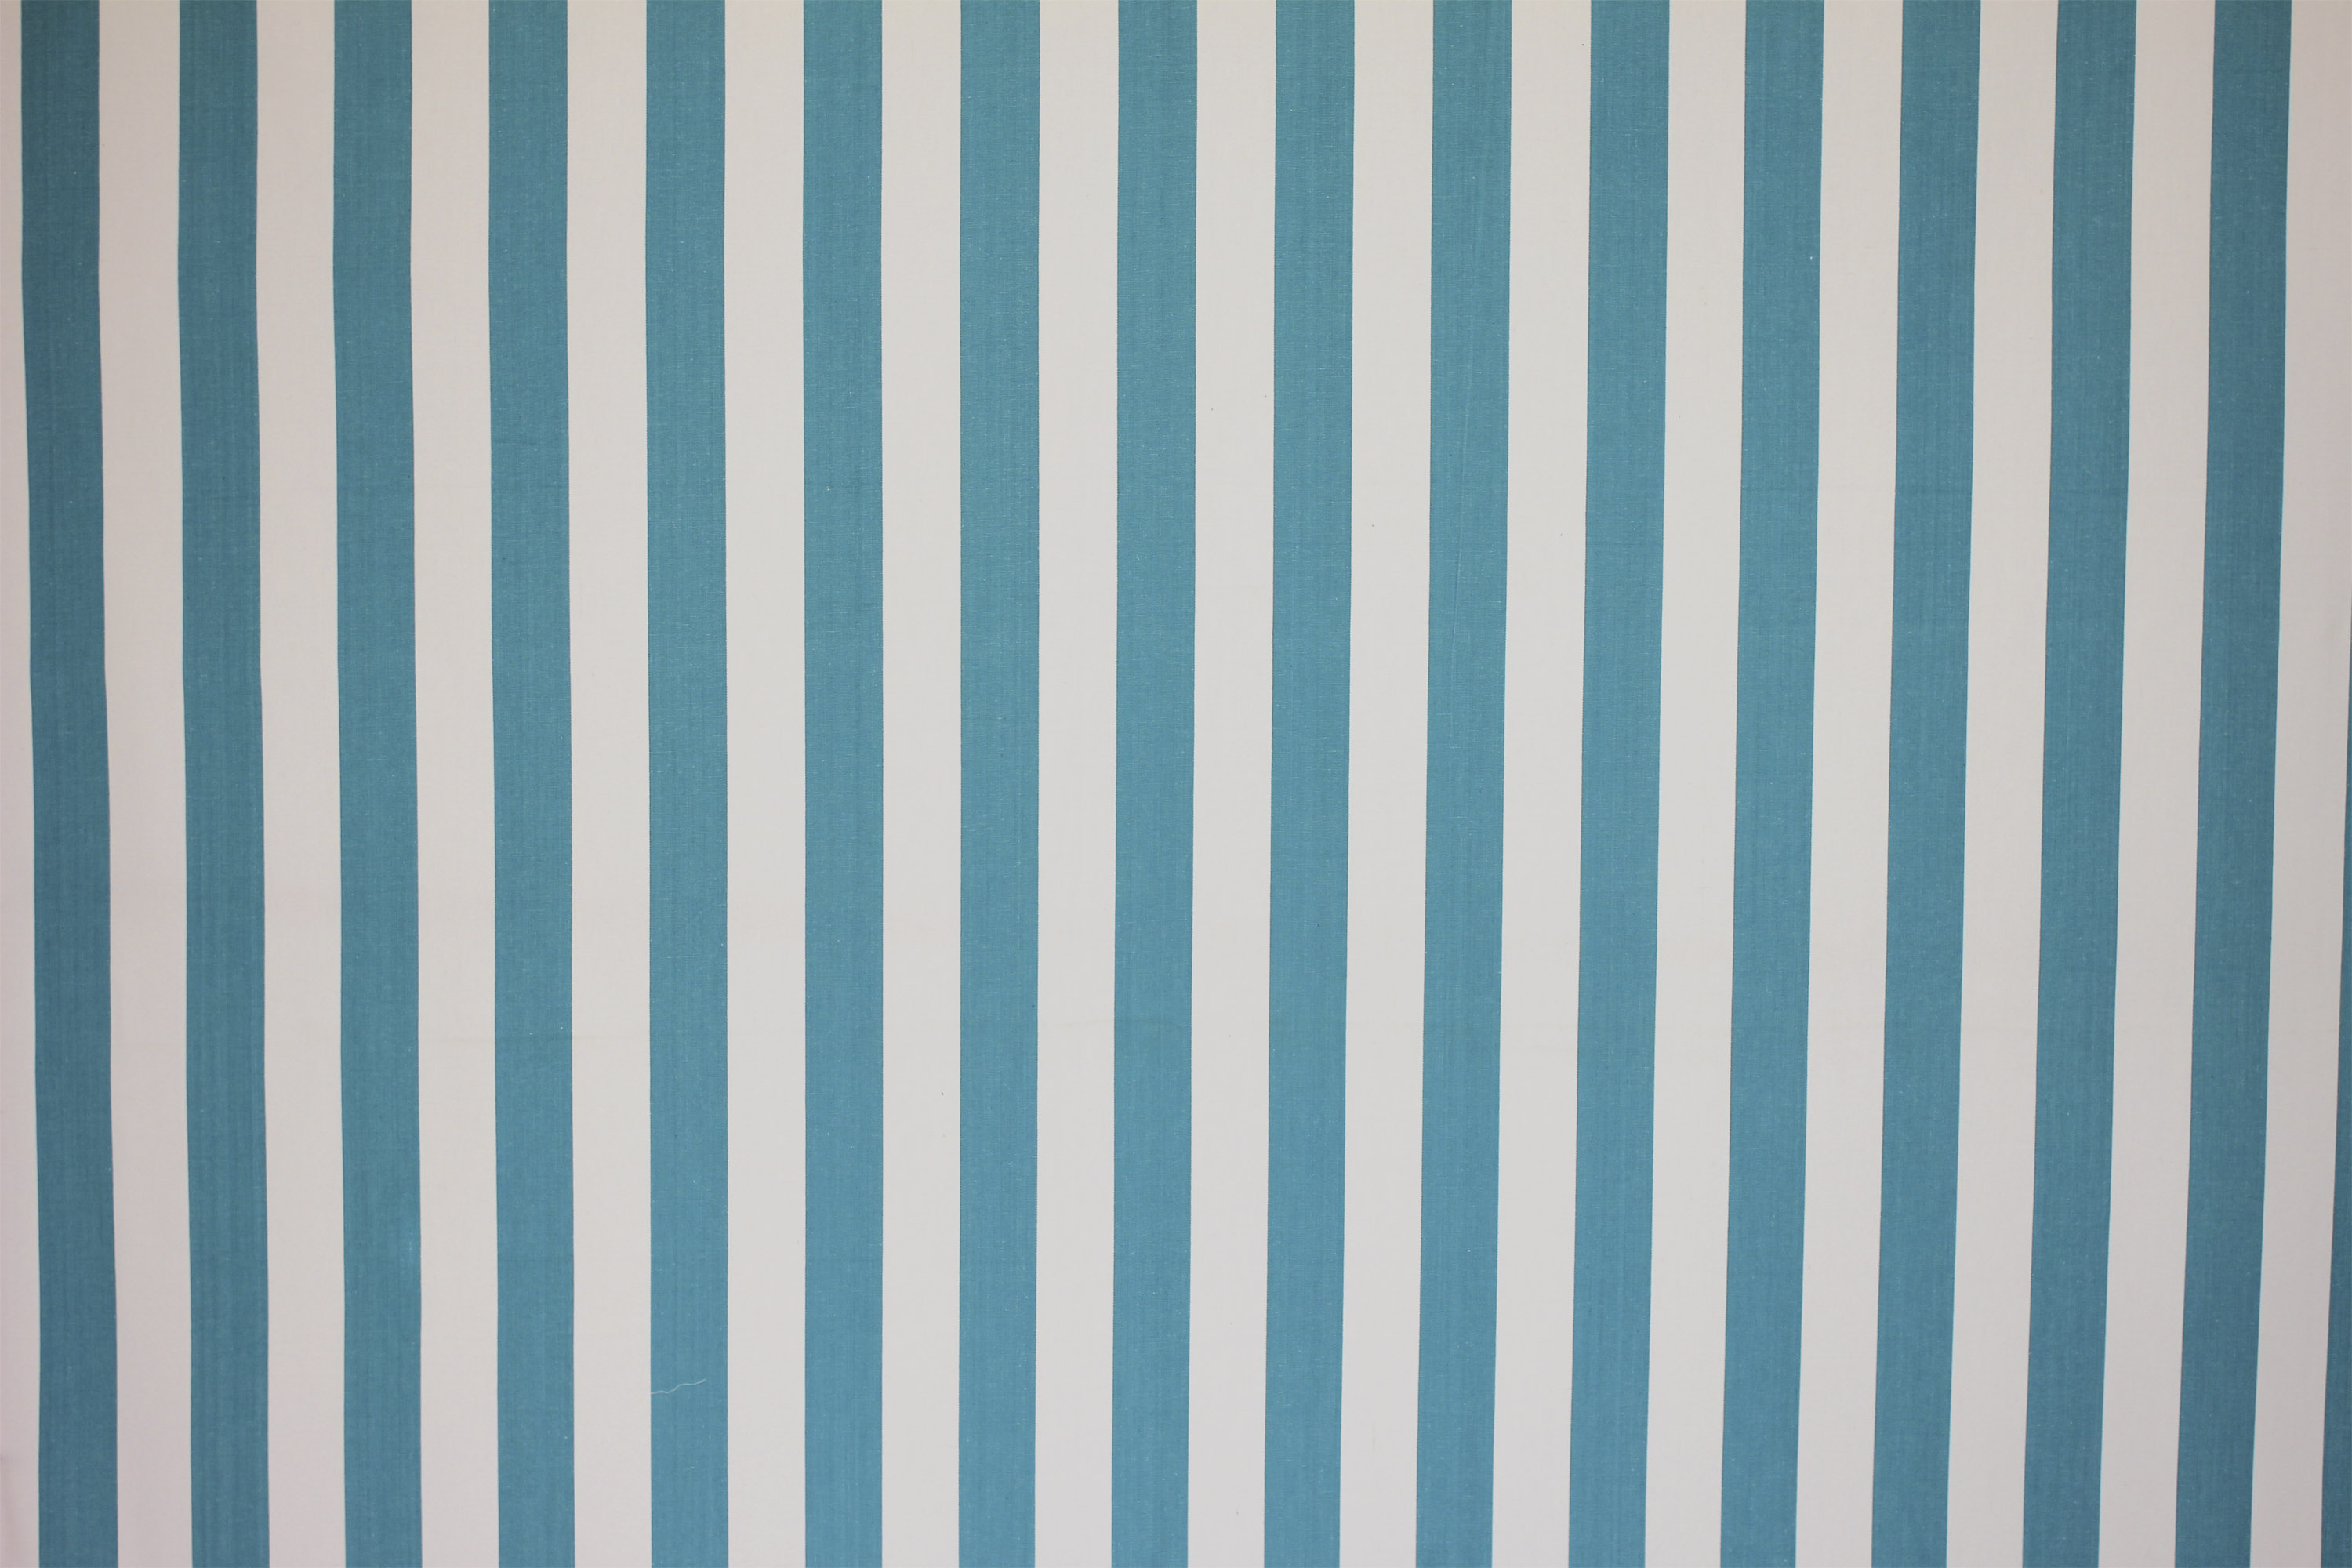 Turquoise Striped Fabrics | Turquoise and White Stripe Fabrics -  Surfing Stripes